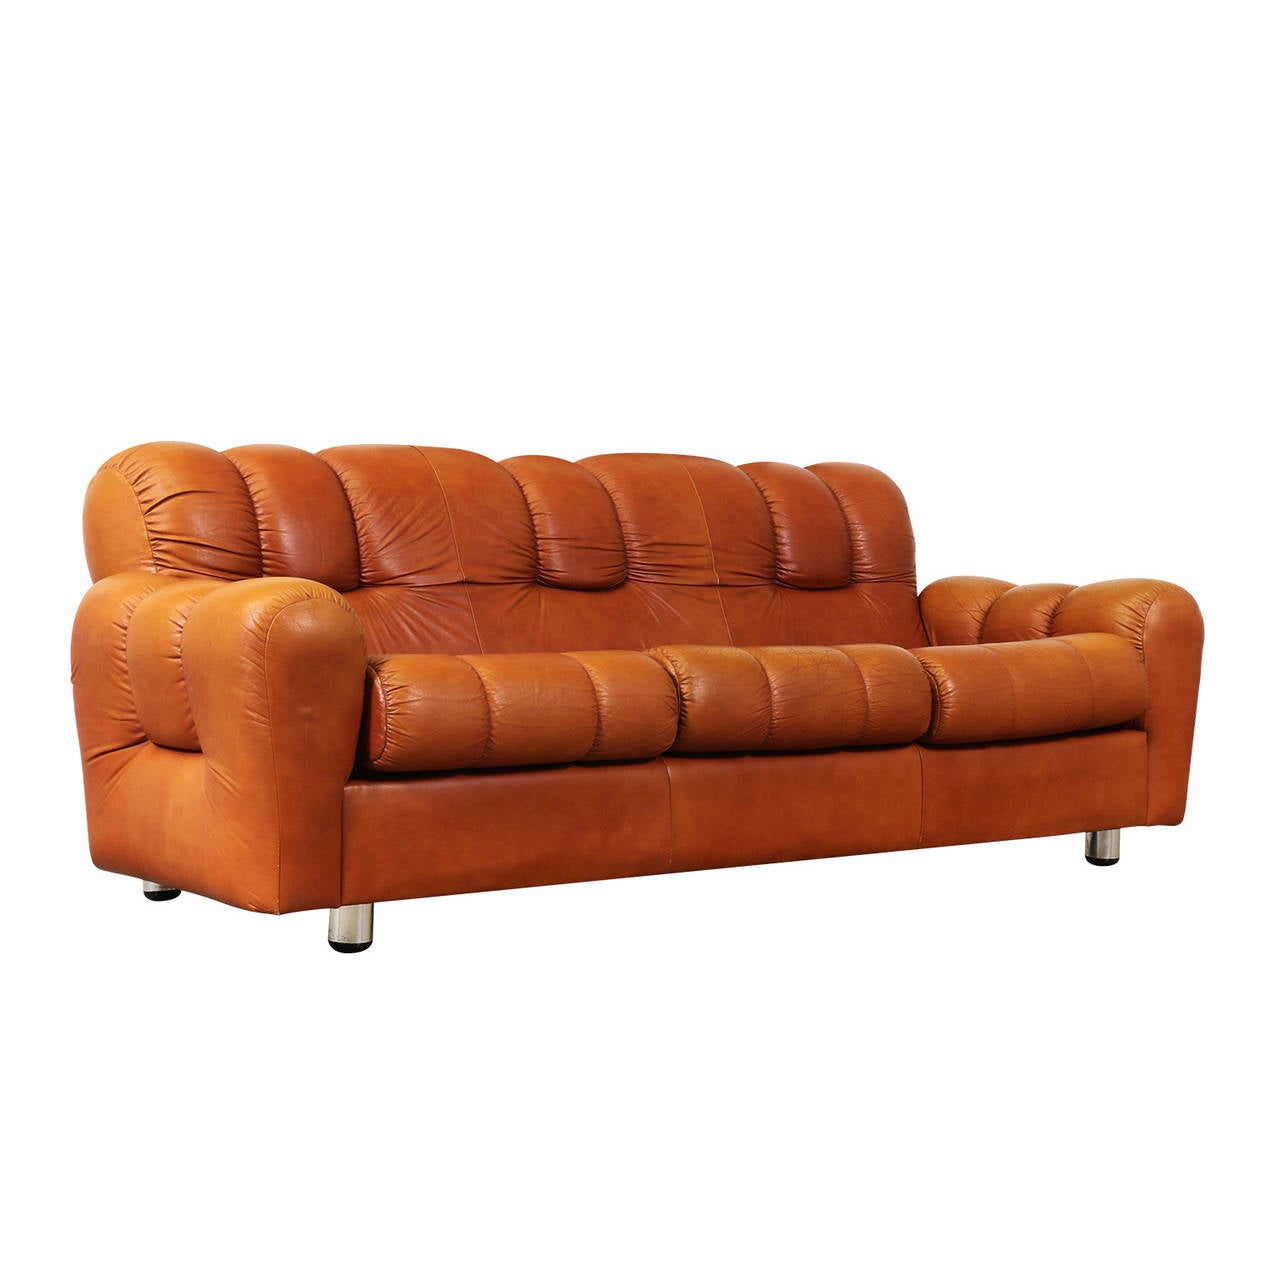 Vintage Tufted Sofa 117